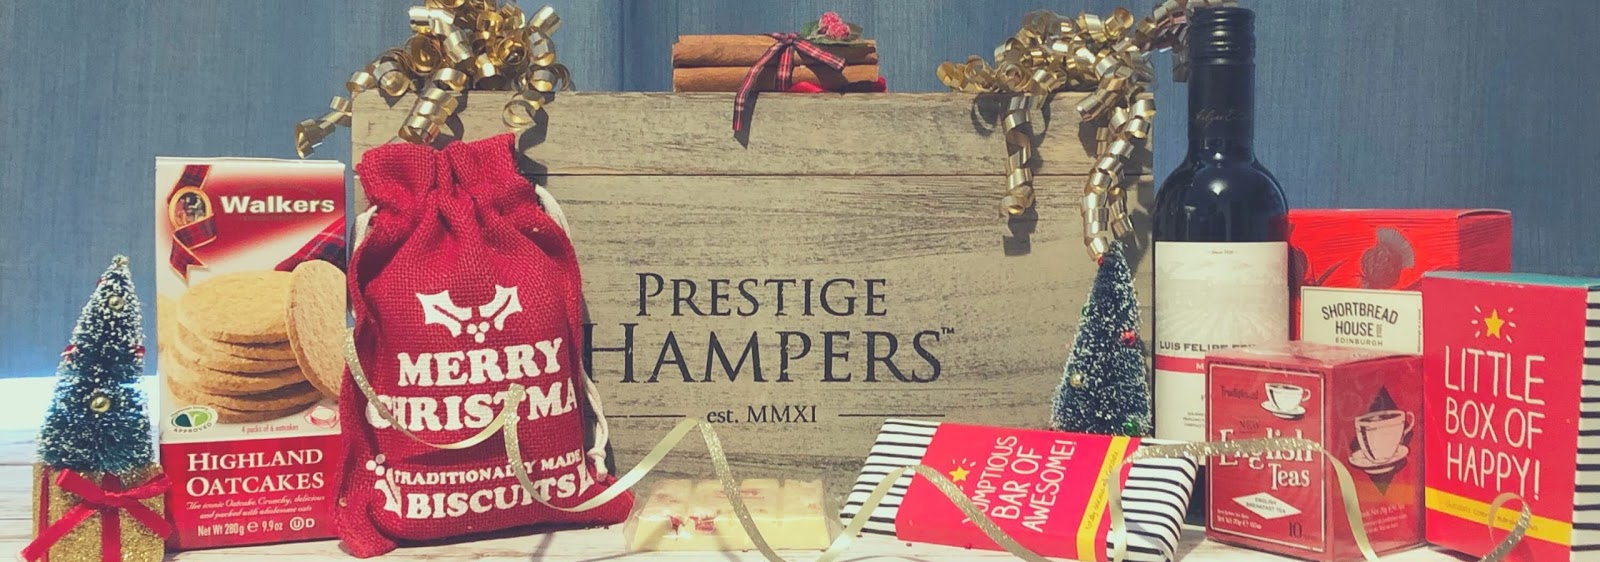 Prestige hampers vintage wooden box containing cookies, biscuits, a bottle of red wine, and tea bags.